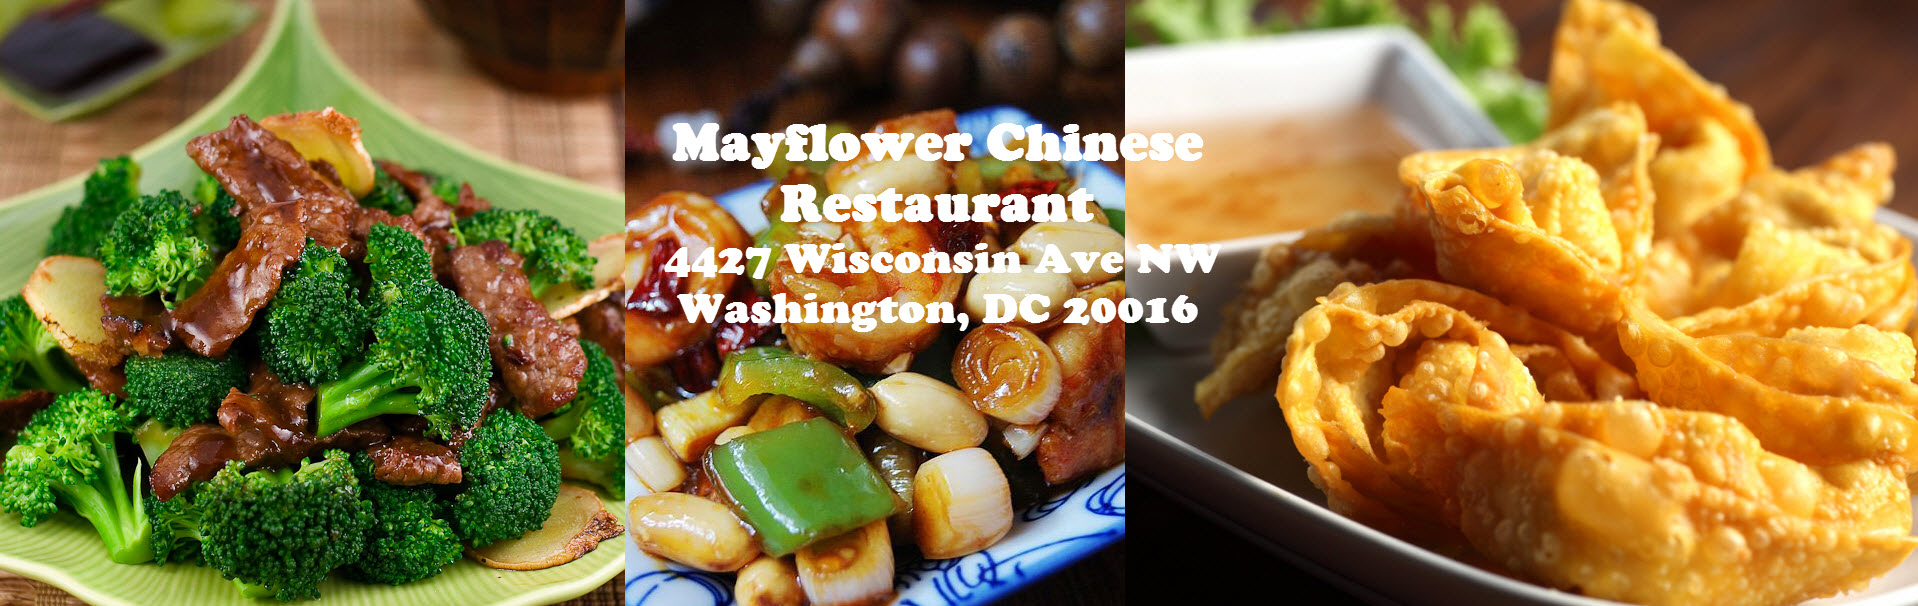 Your favorite Chinese food at Mayflower Chinese